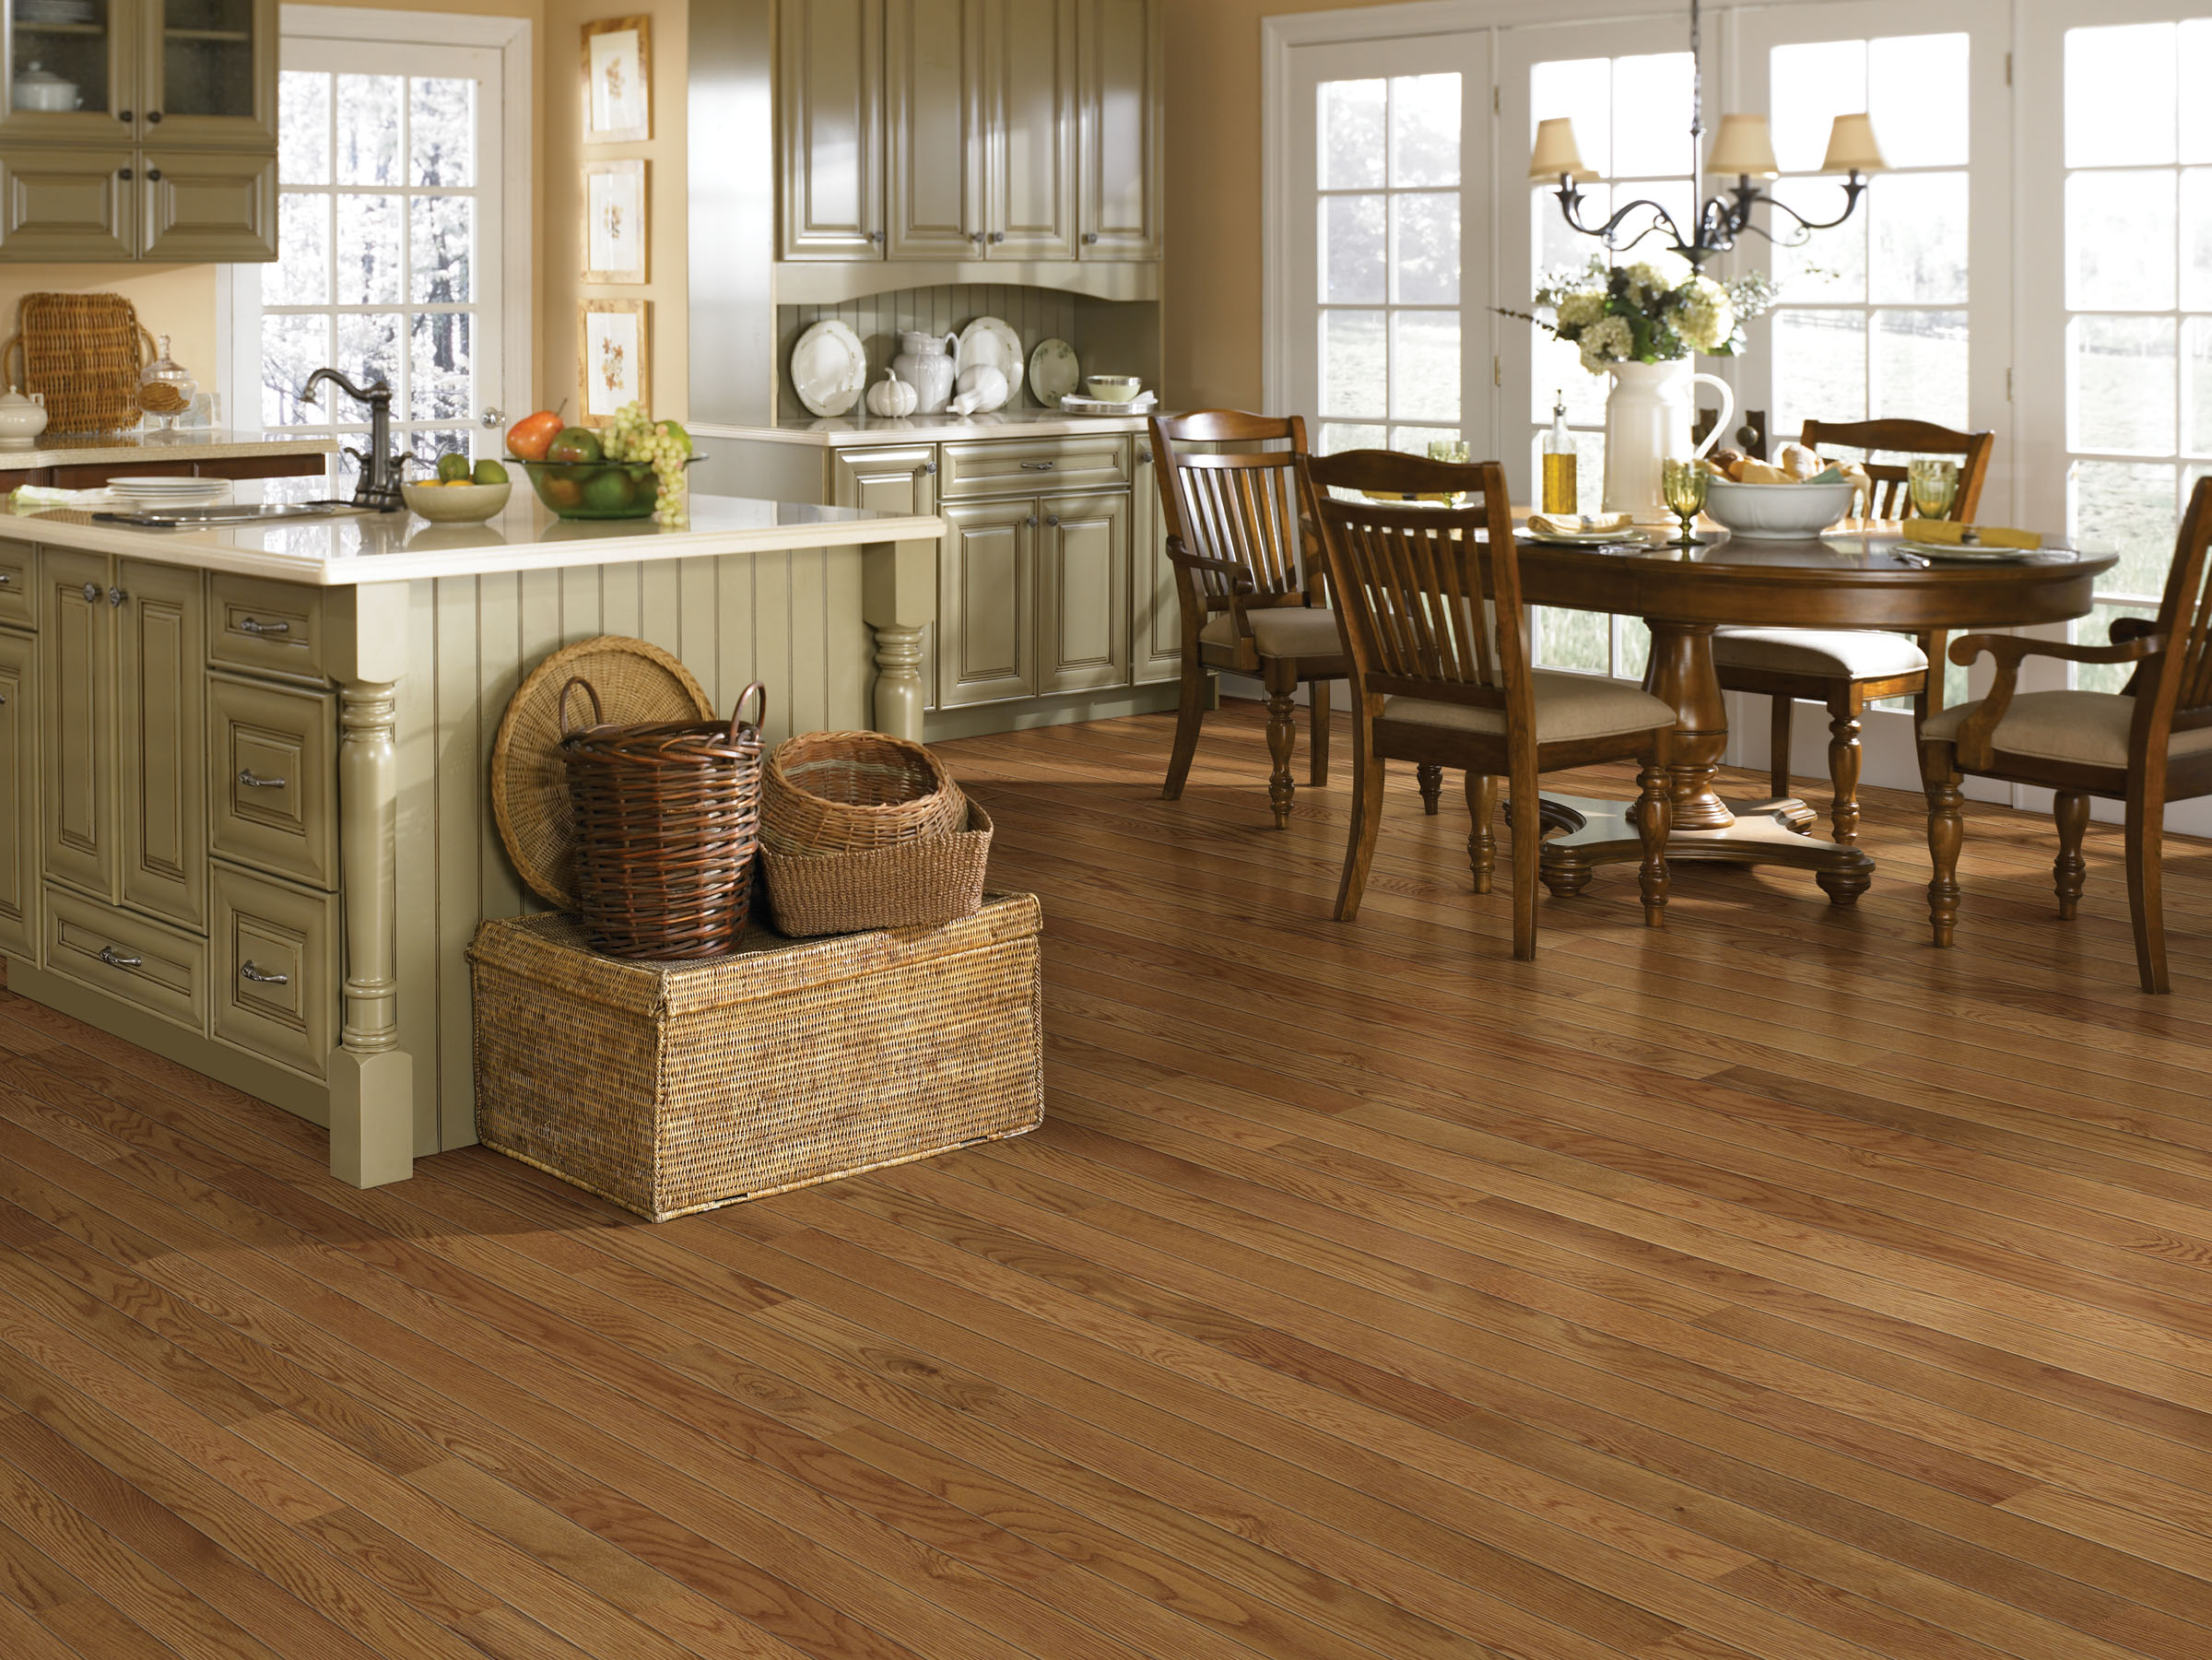 Hardwood2 san diego carpet window treatments blinds and for Kitchen dining room flooring